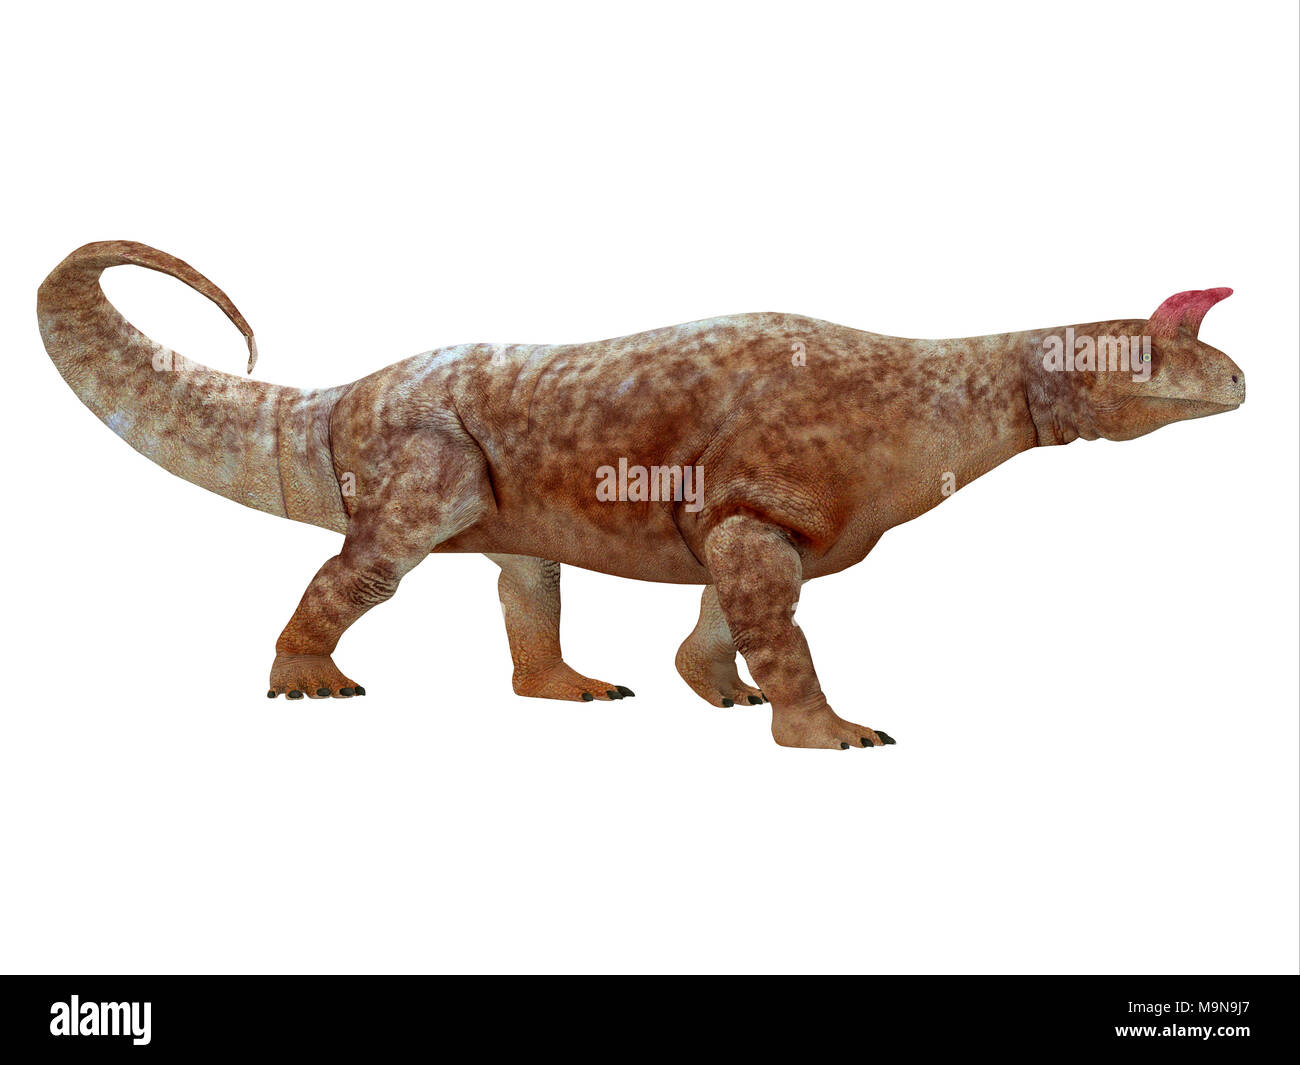 Shringasaurus Dinosaur Side Profile - Shringasaurus was a herbivorous sauropod dinosaur that lived in India in the Triassic Period. - Stock Image